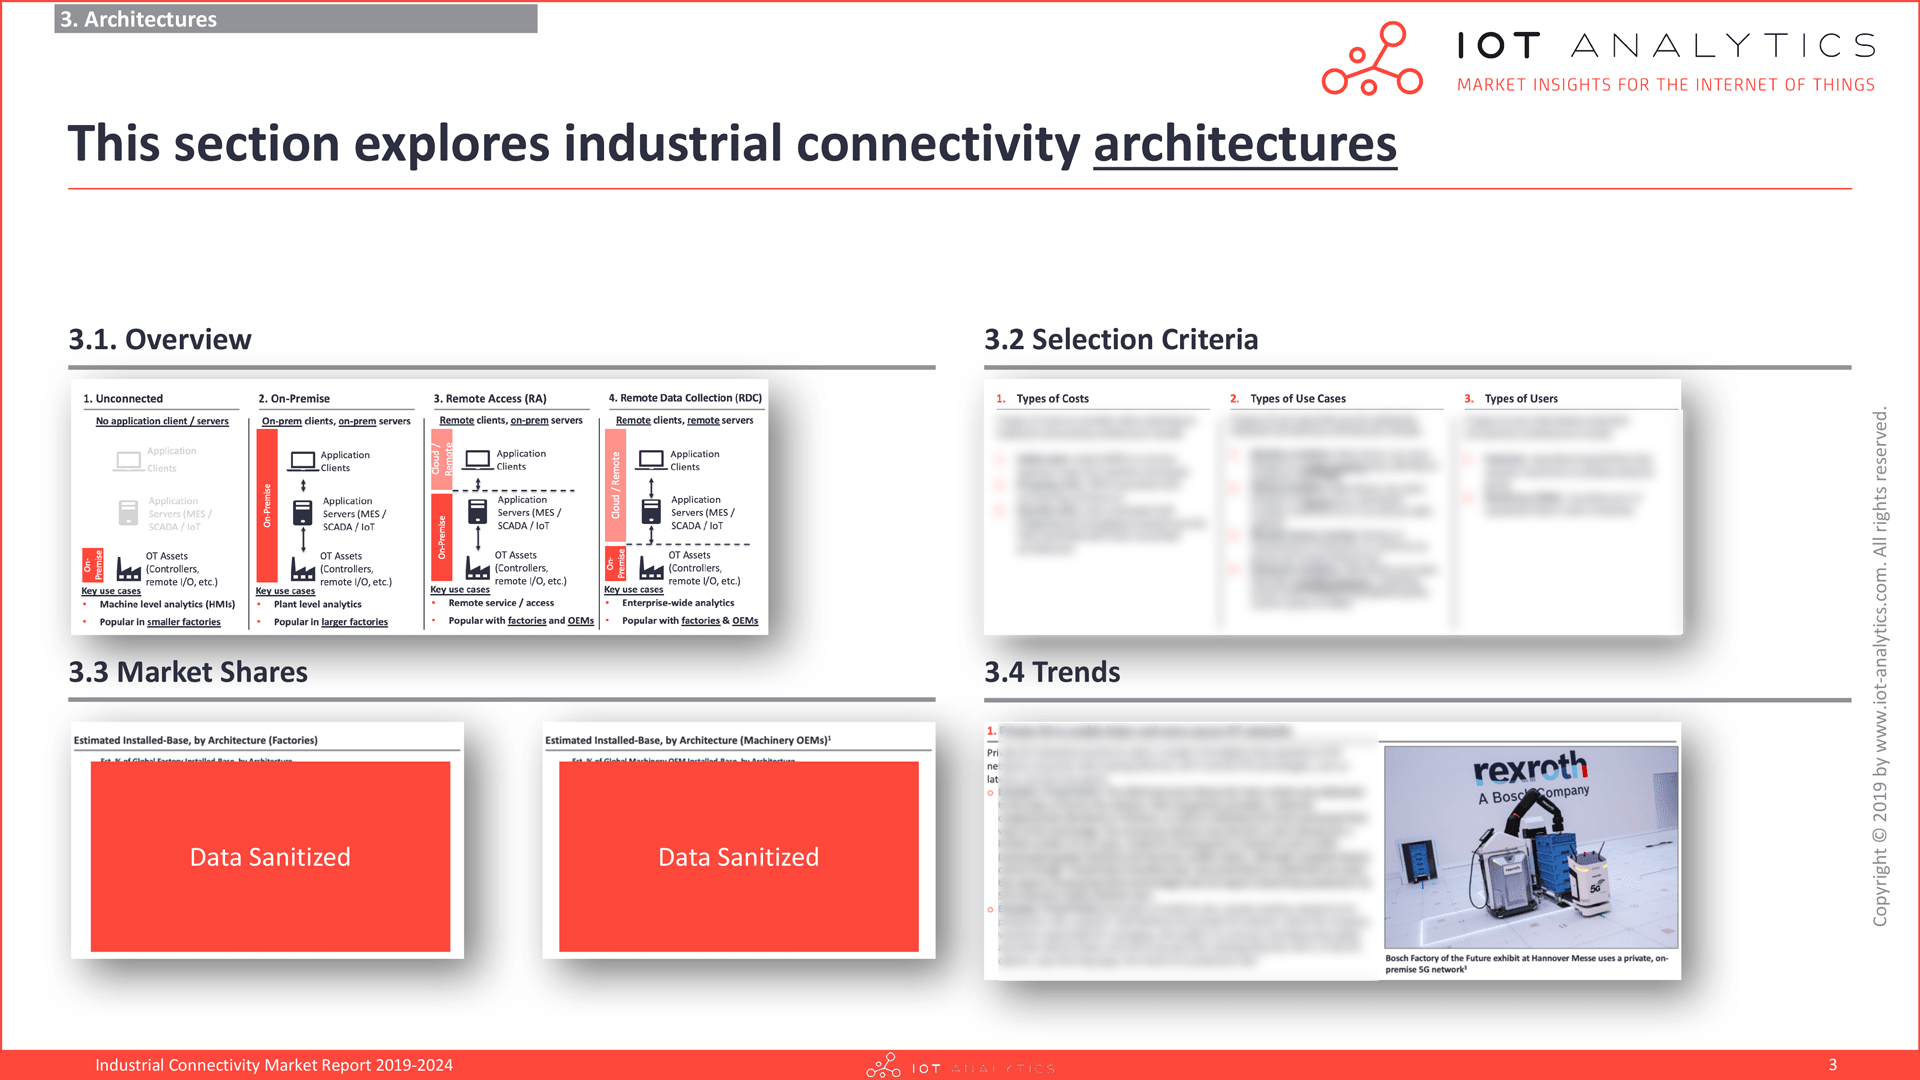 Industrial-Connectivity-Market-Report-2019-2024-Architectures